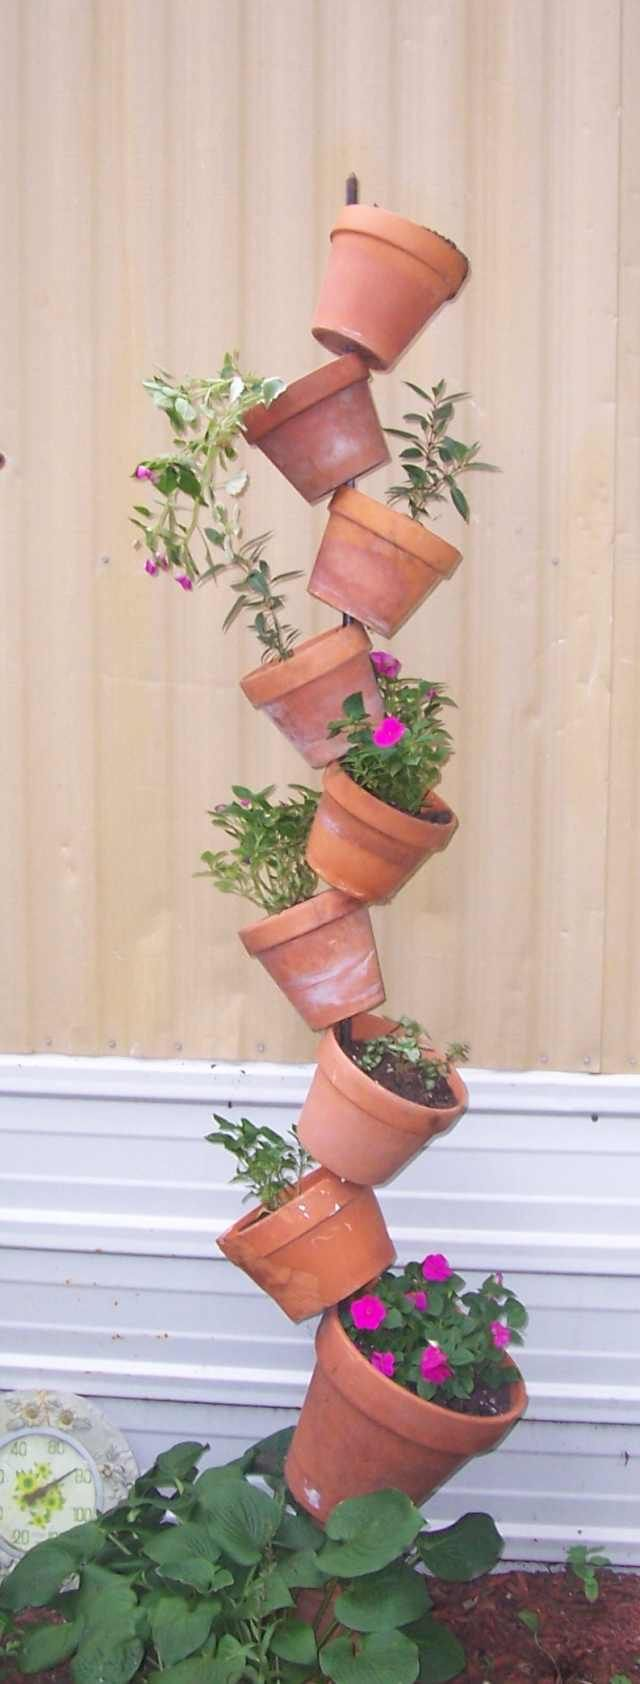 I have been meaning to make one of these for my herbs for quite some time.